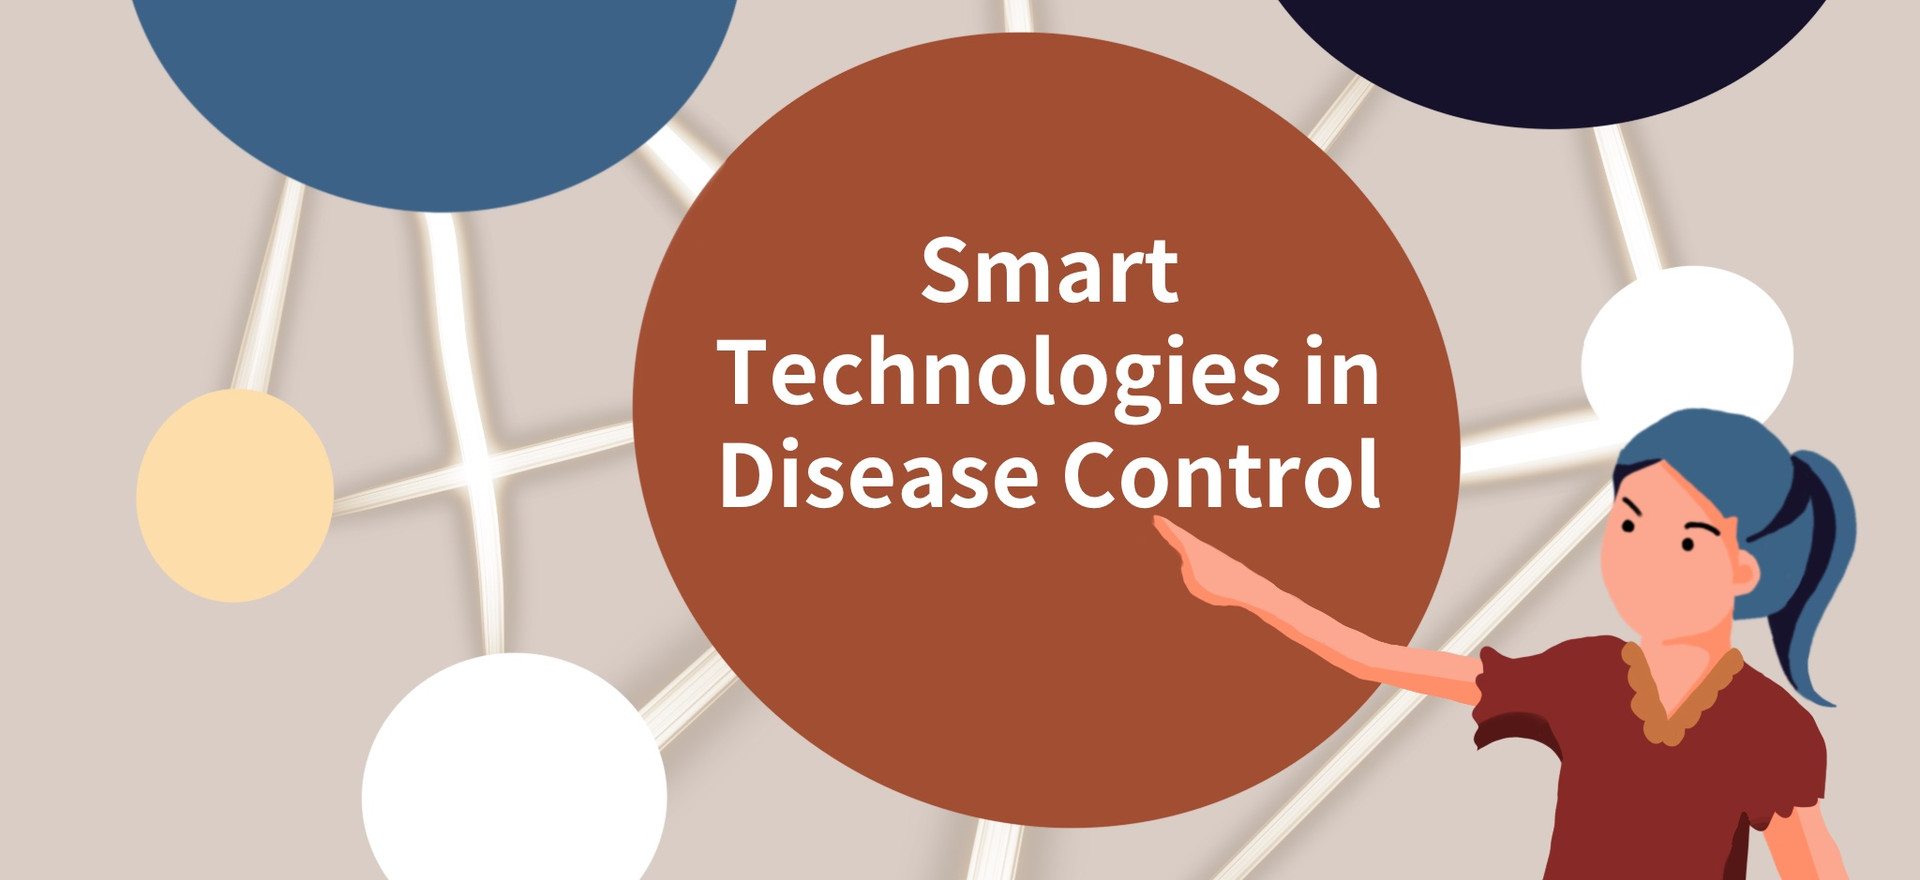 Smart Technologies in Disease Control